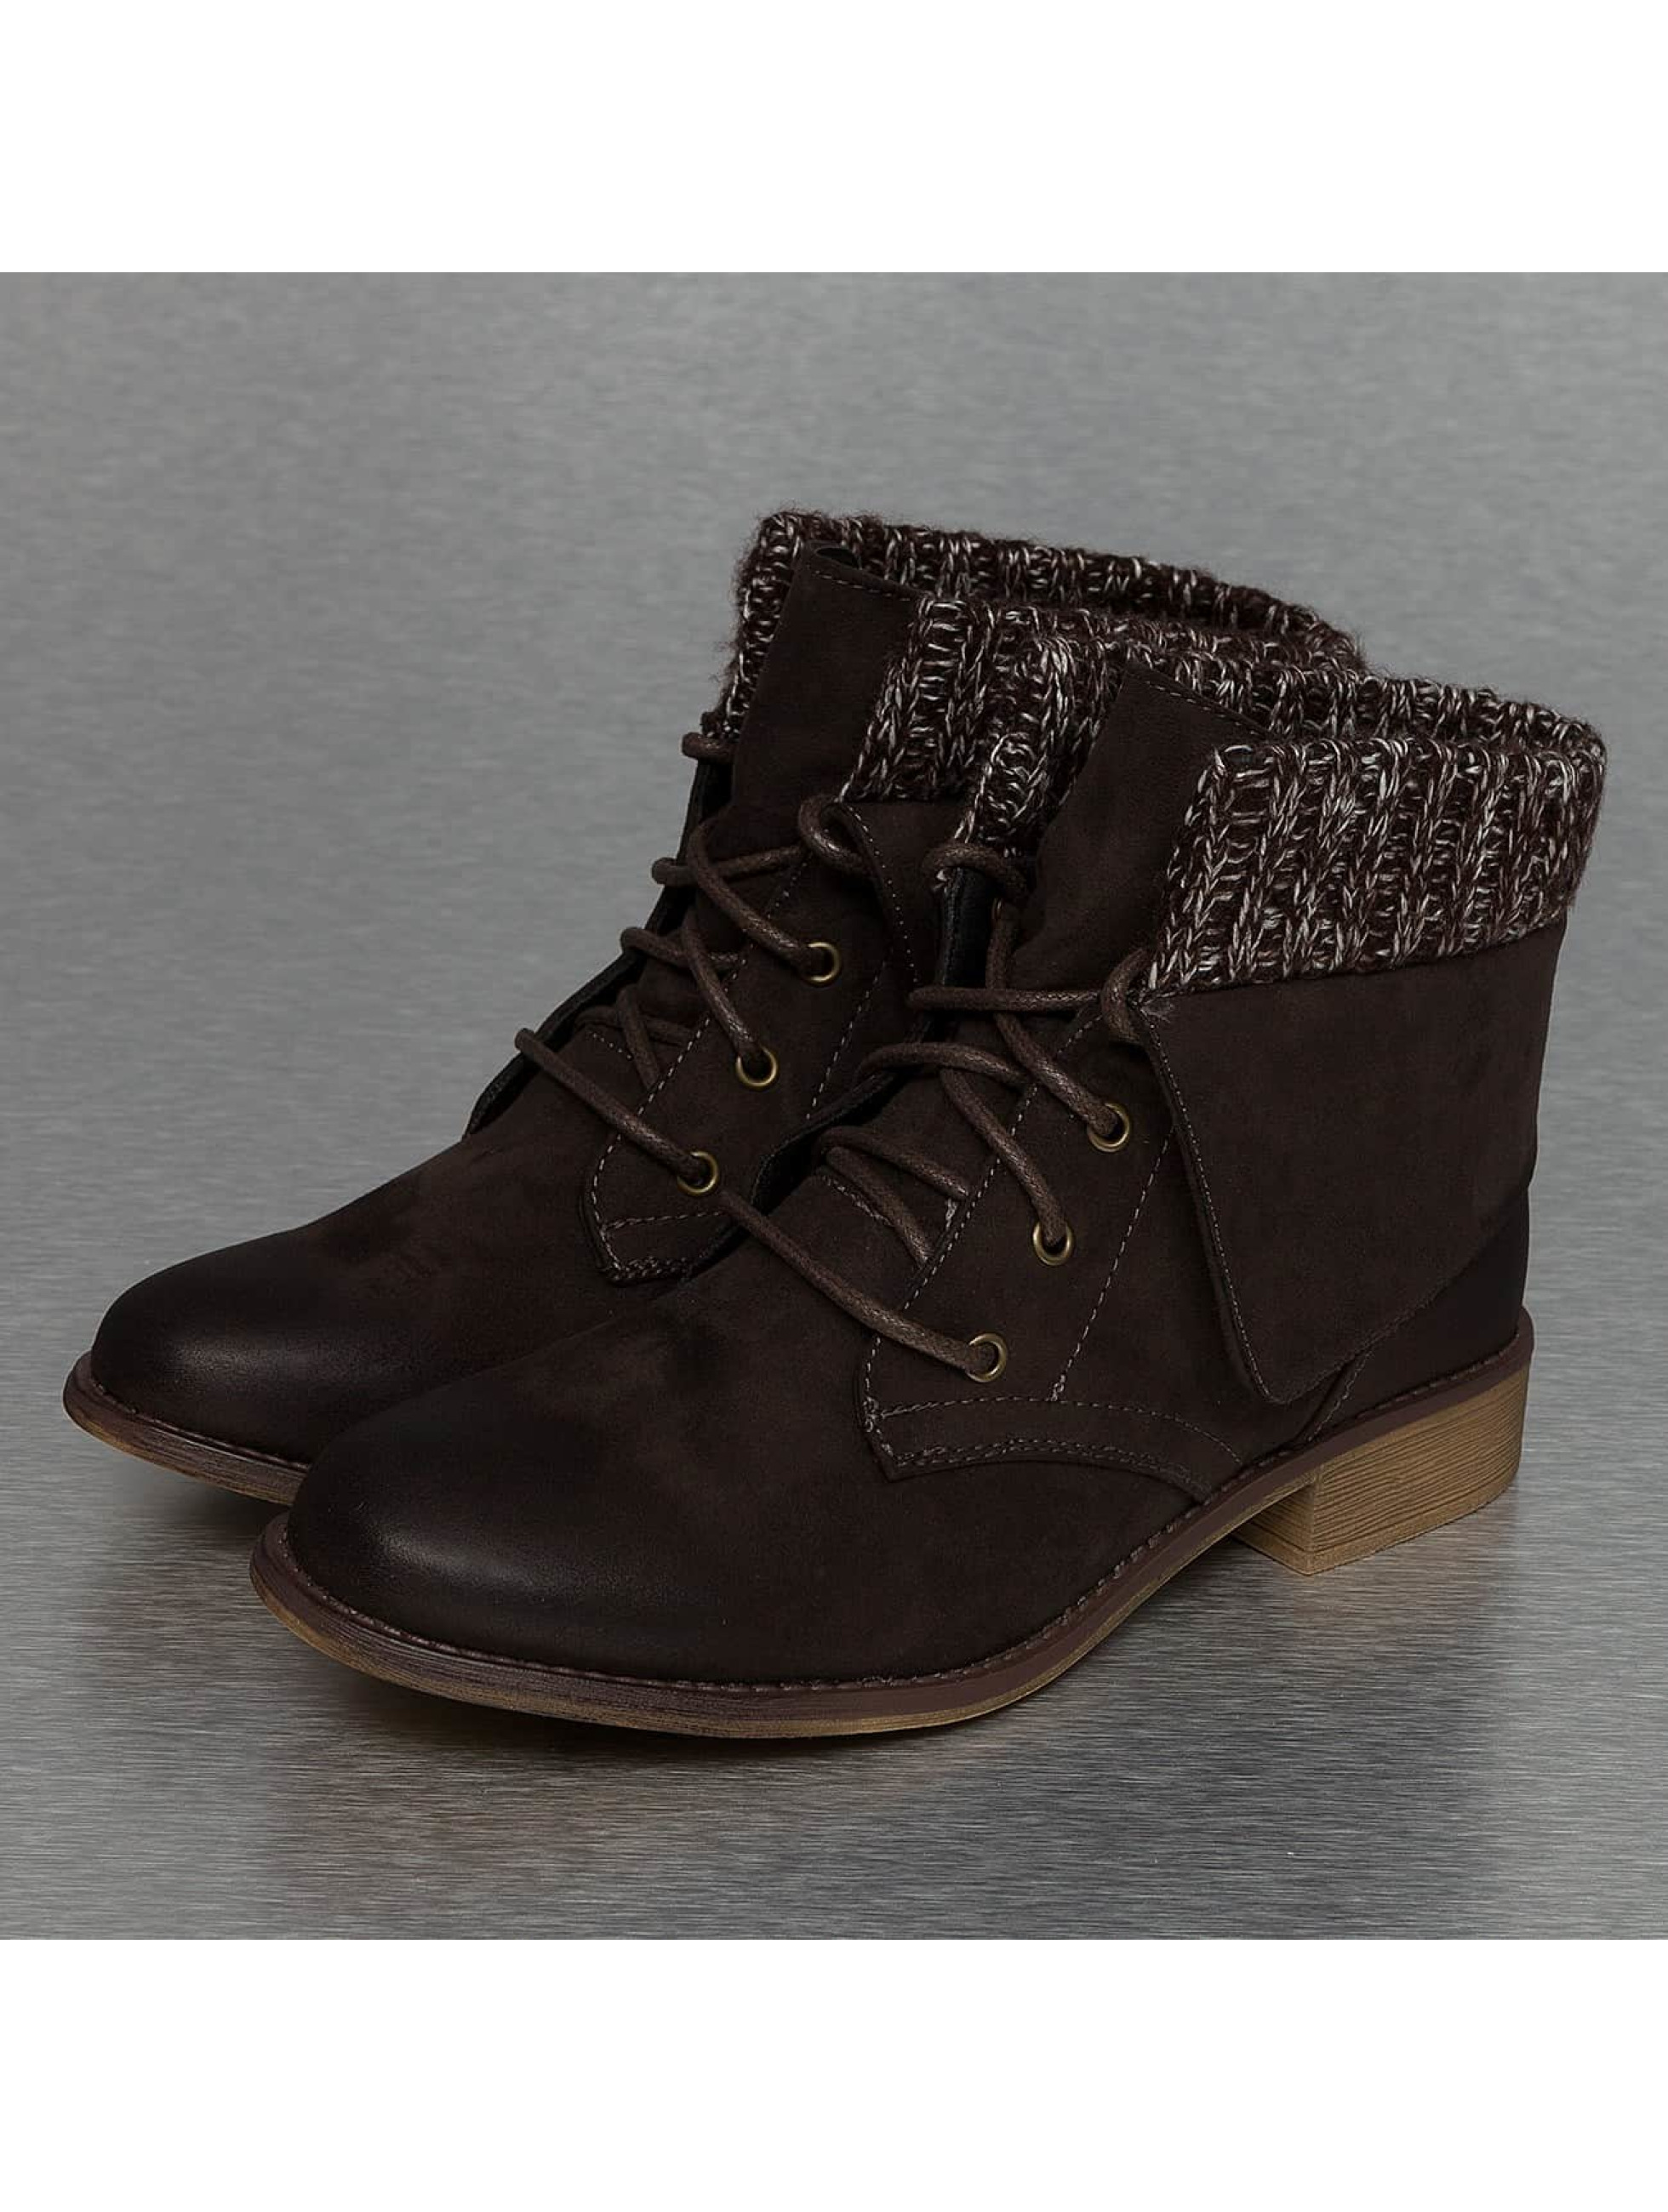 Hailys Boots/Ankle boots Ariana brown